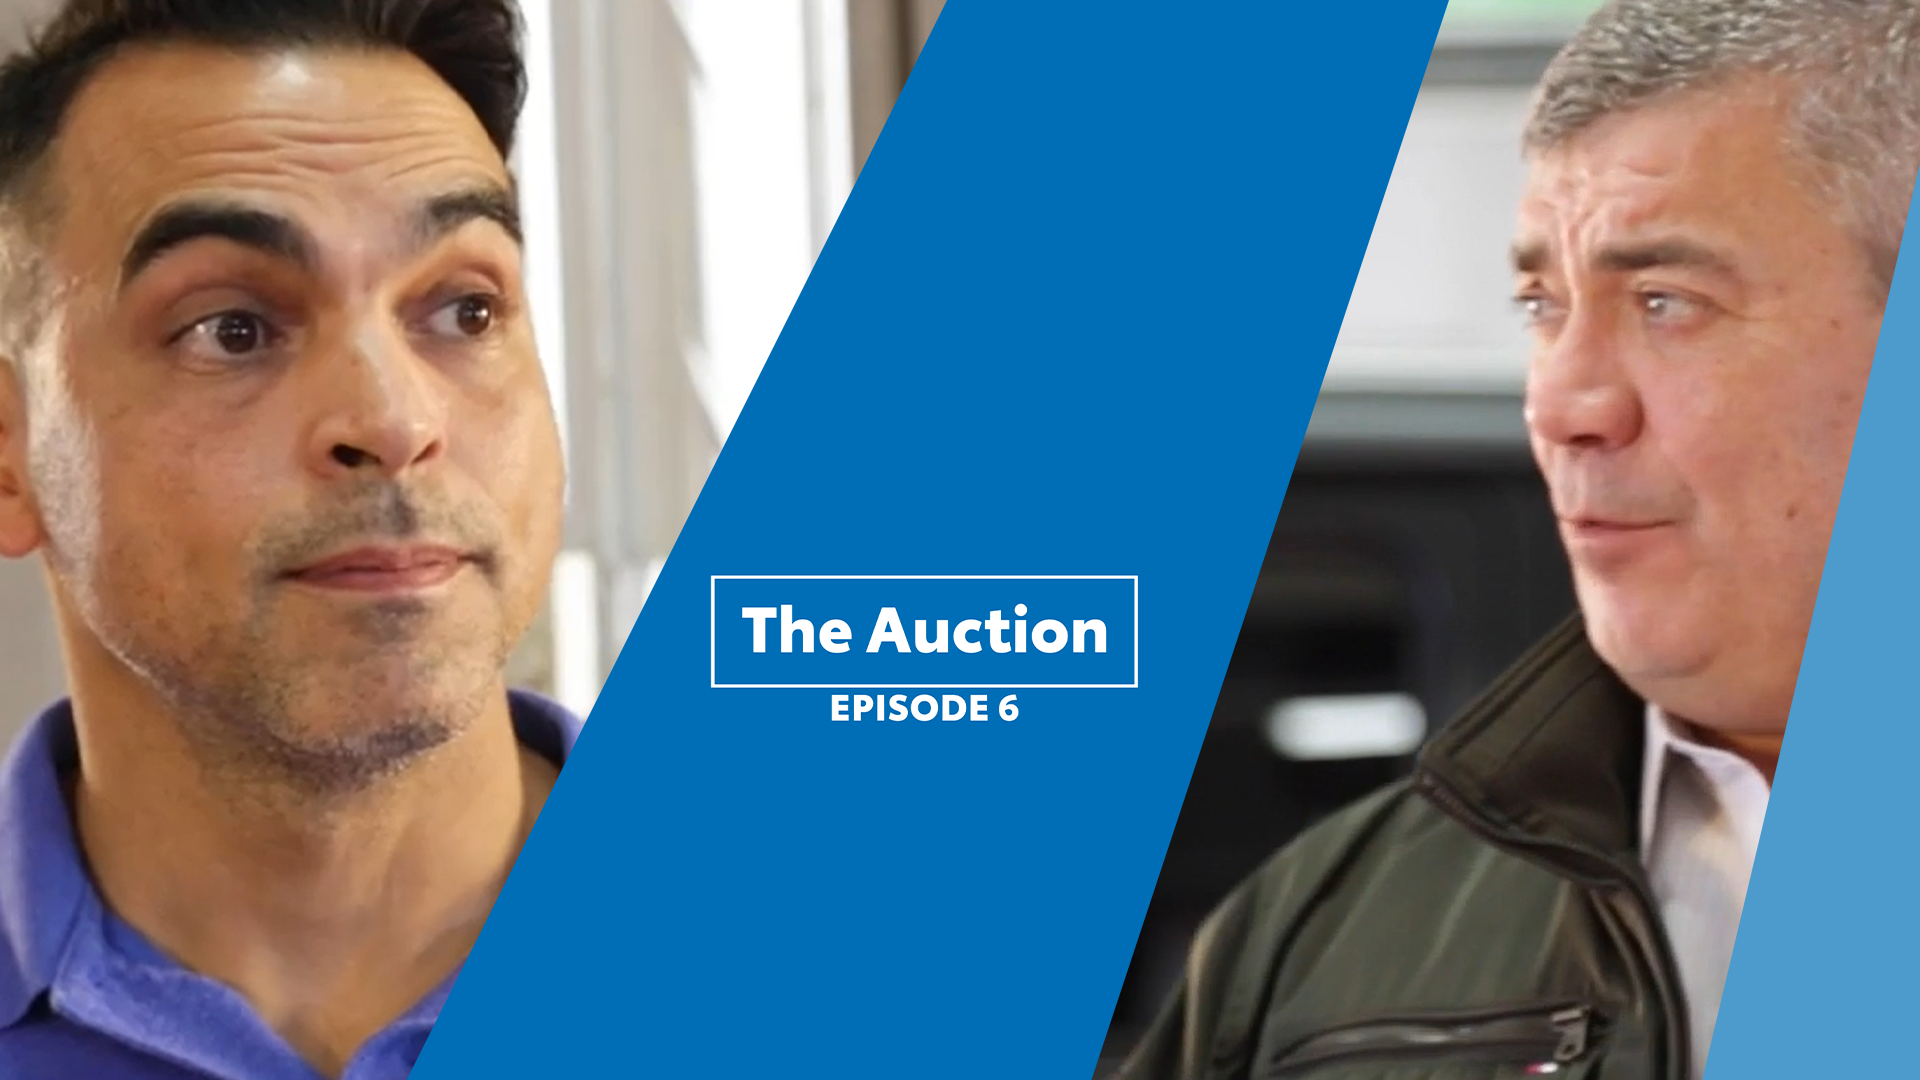 The Auction, Episode 6: Playing a Round